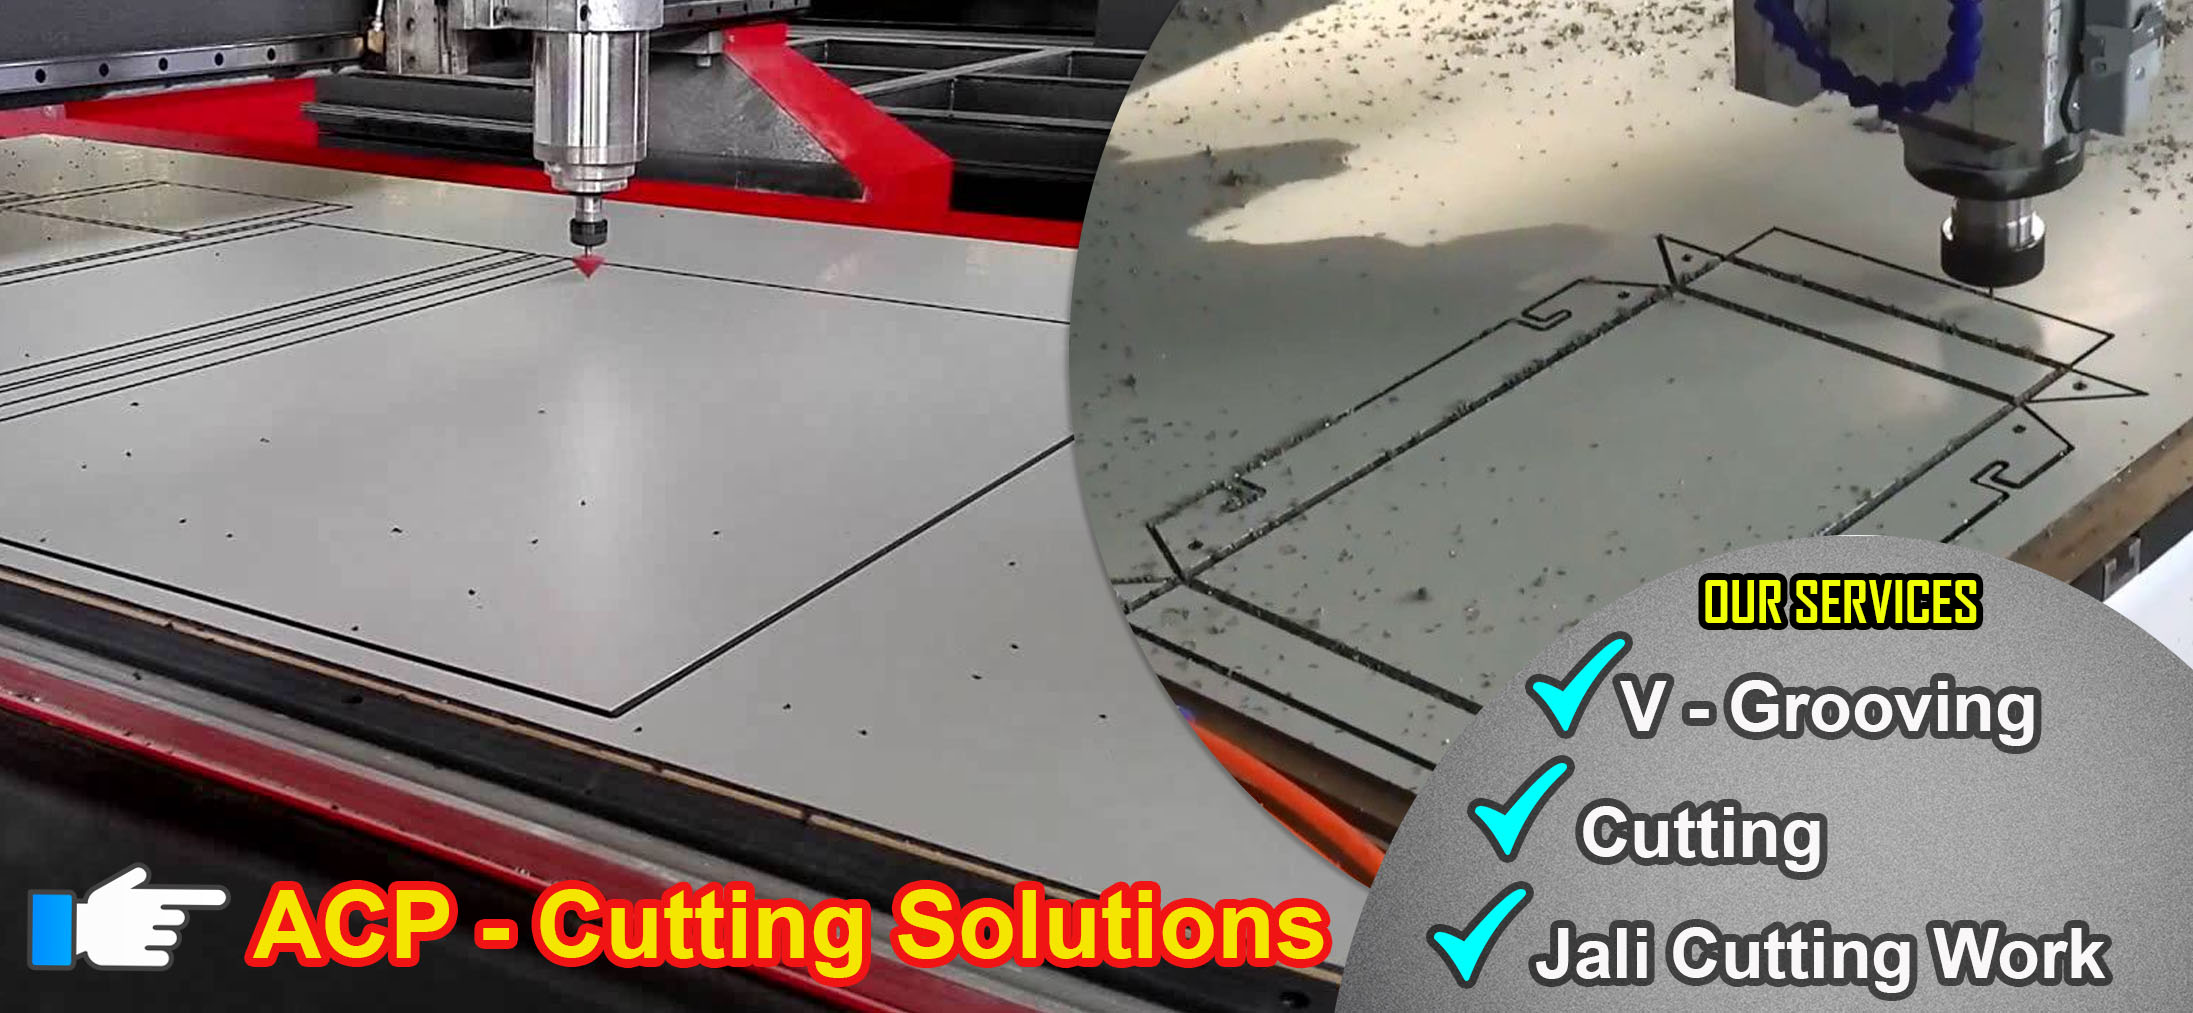 ACP Sheet Cutting Slide